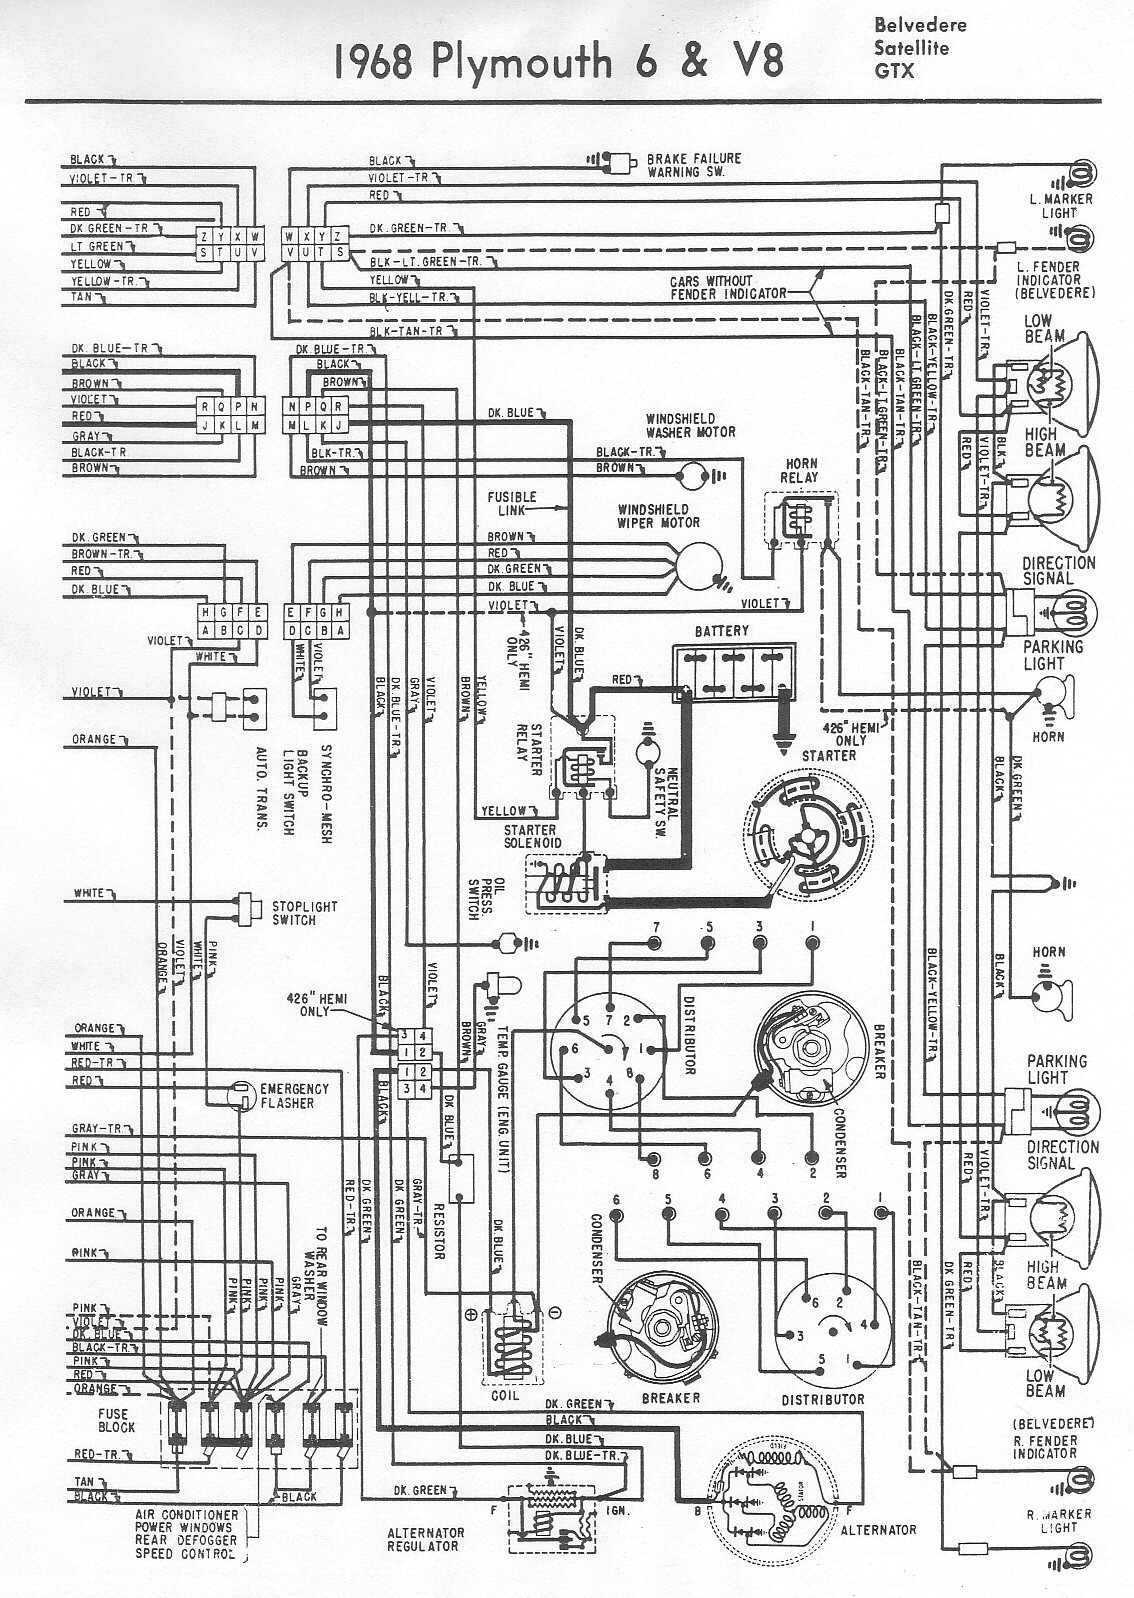 enchanting 1970 plymouth road runner wiring diagram illustration rh itseo info 1965 Plymouth Fury 1967 Plymouth Satellite